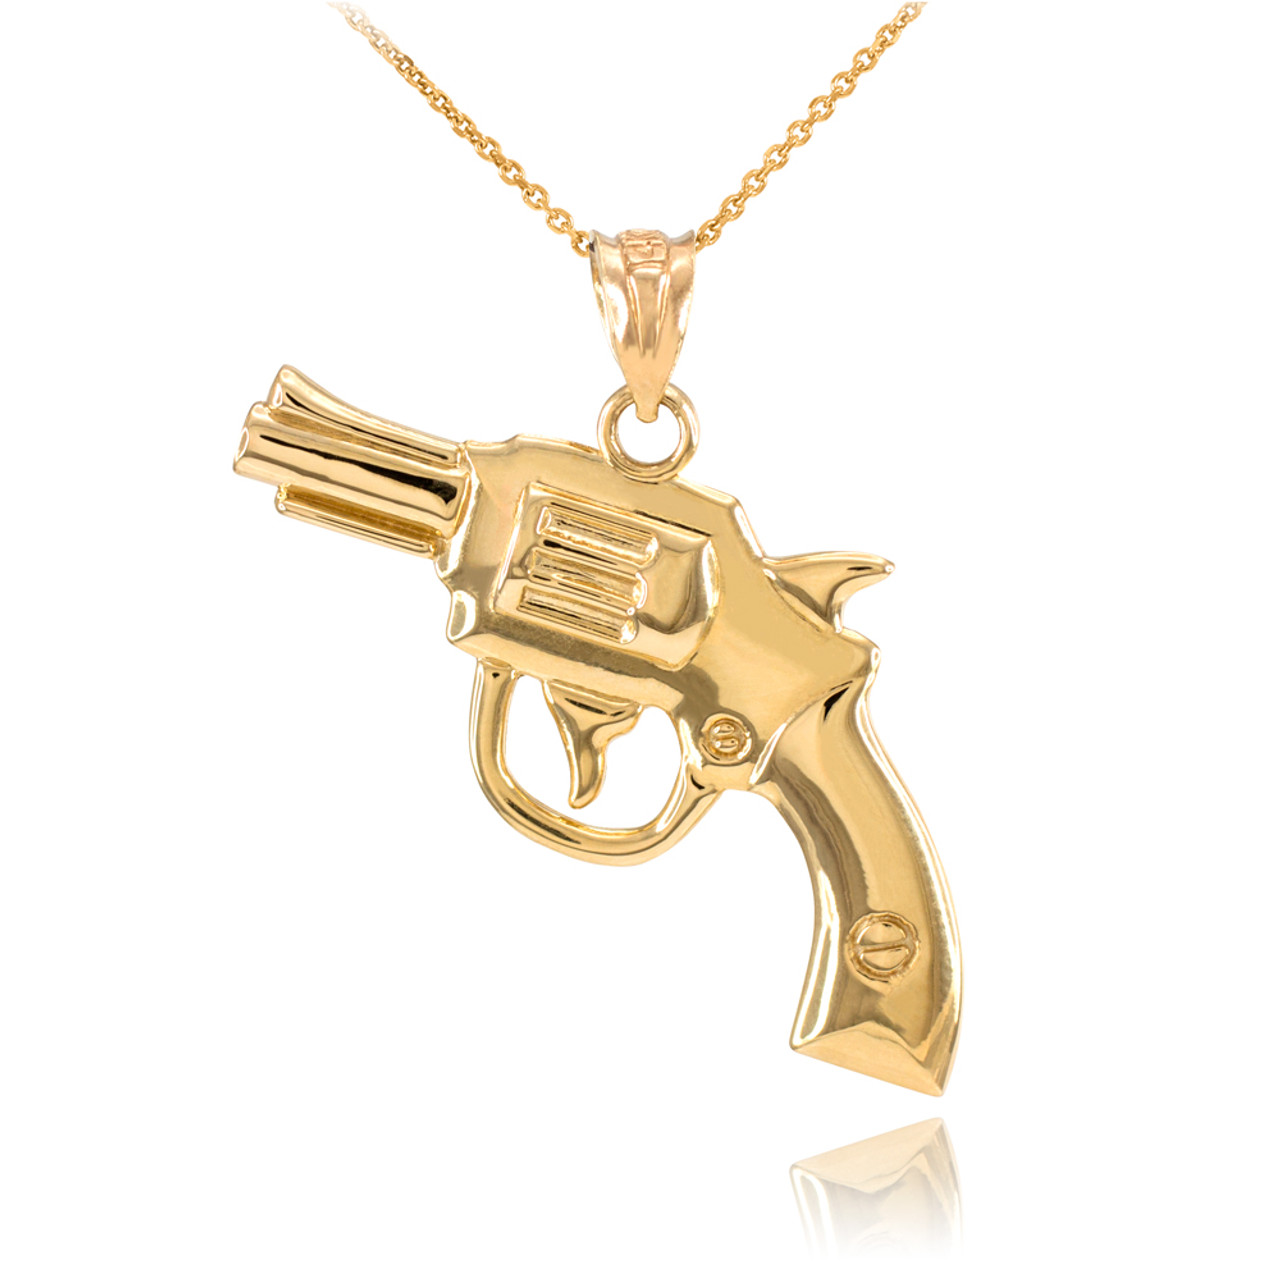 Solid gold revolver gun pendant necklace revolver gun pendants solid gold revolver gun pendant necklace aloadofball Image collections